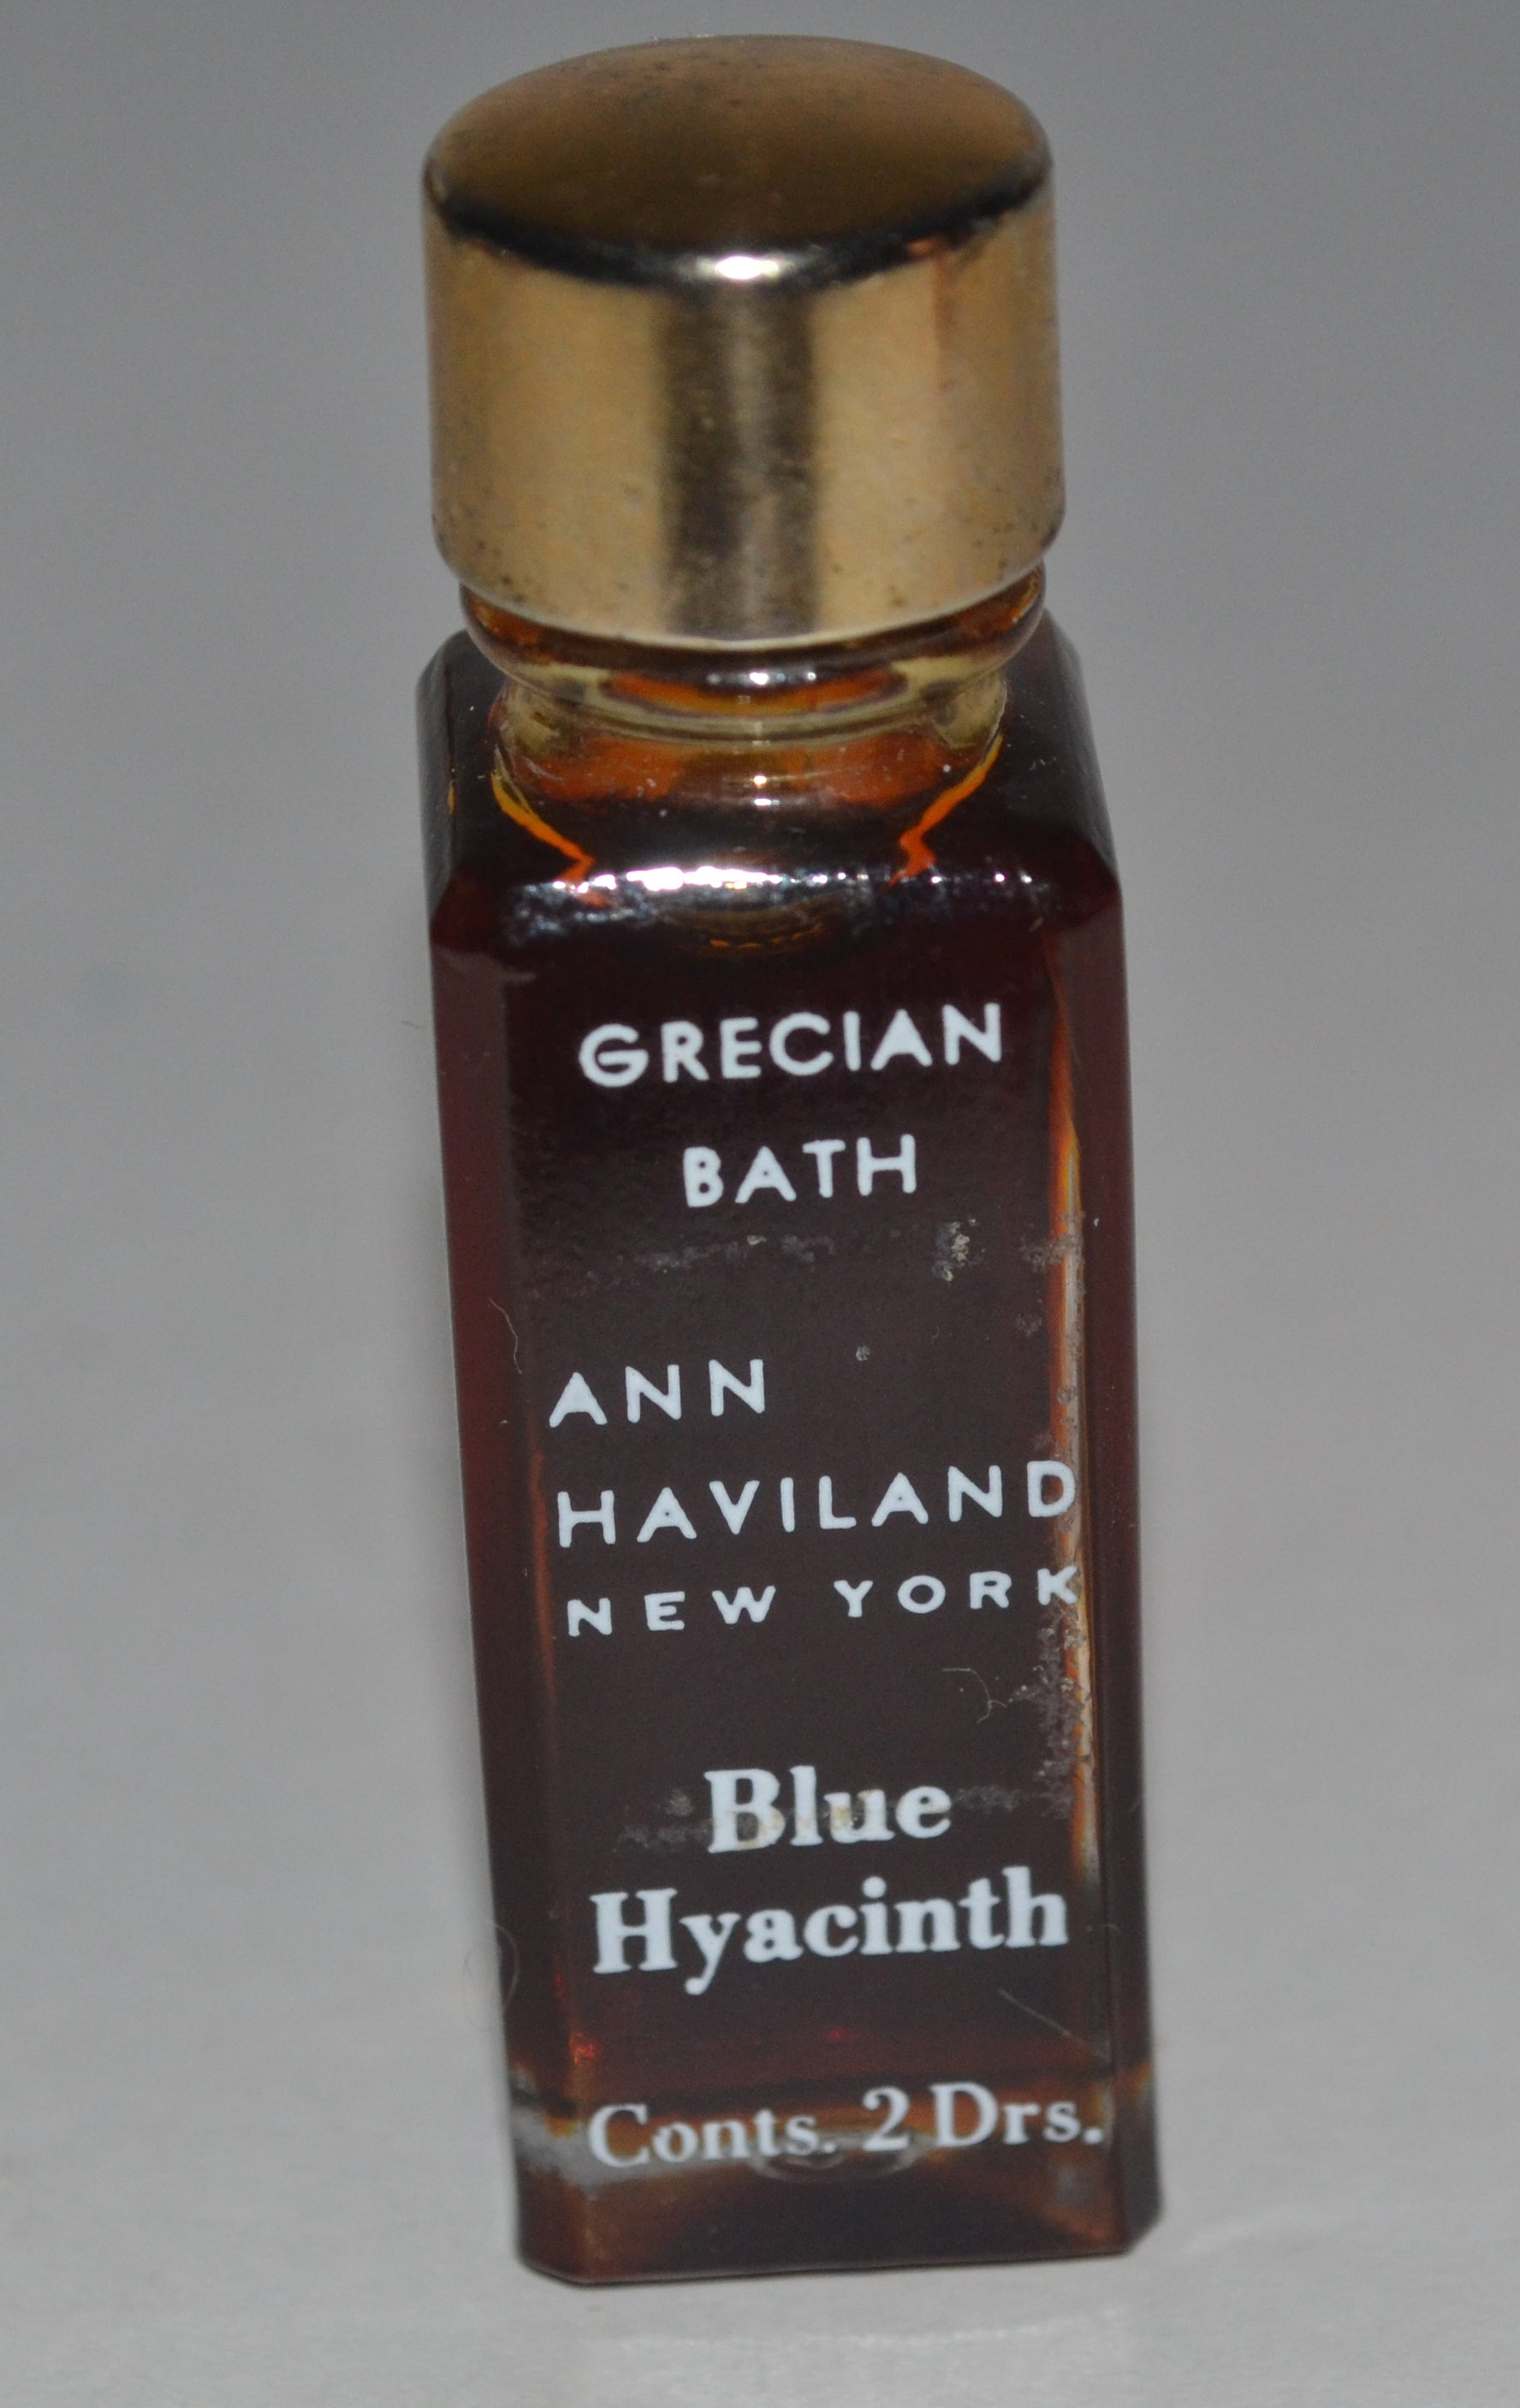 Vintage Blue Hyacinth Grecian Bath Mini By Ann Haviland